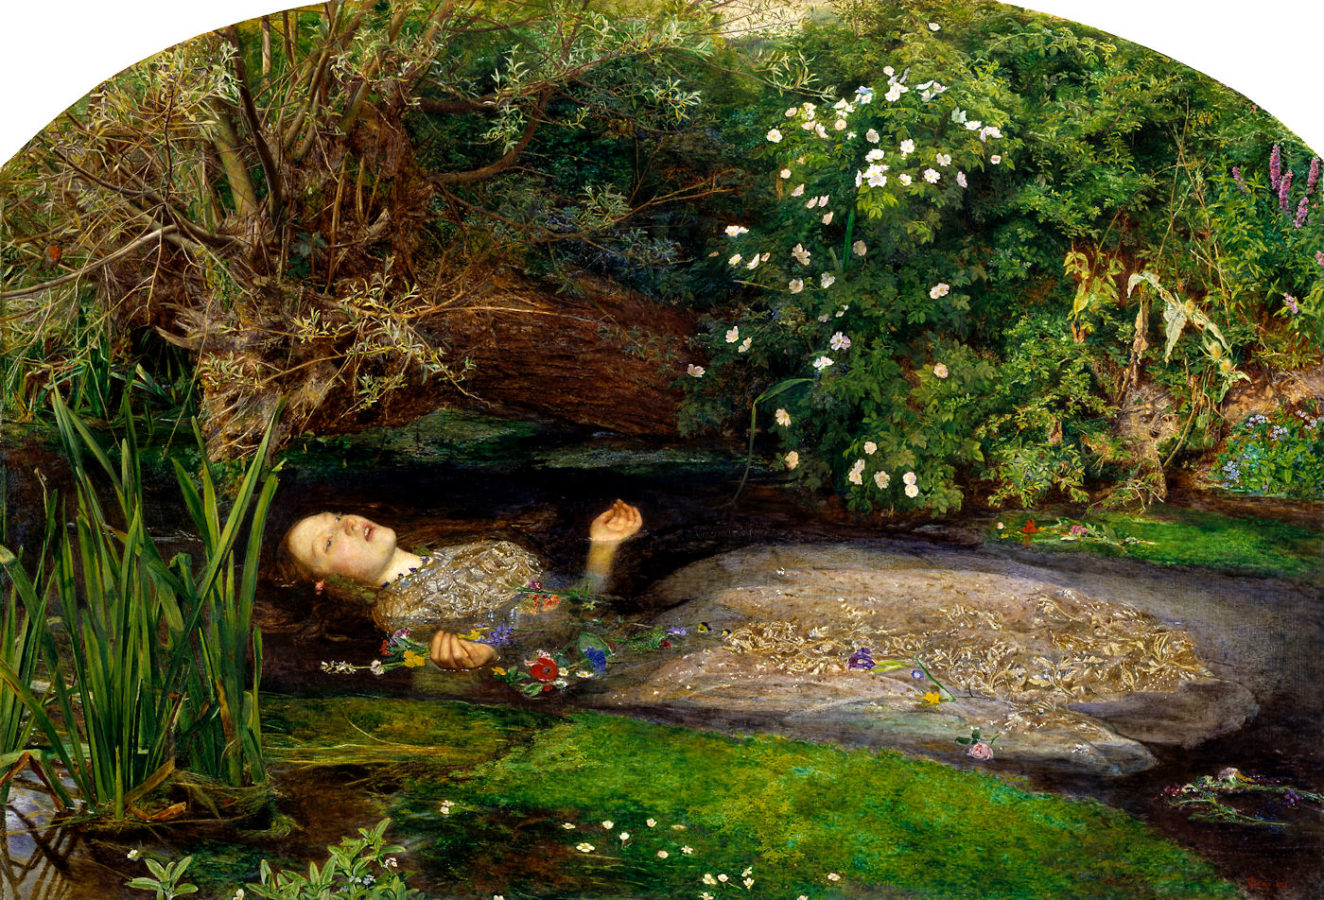 John Everett Millais, Ophelia, 1851–1852, Tate Gallery, London